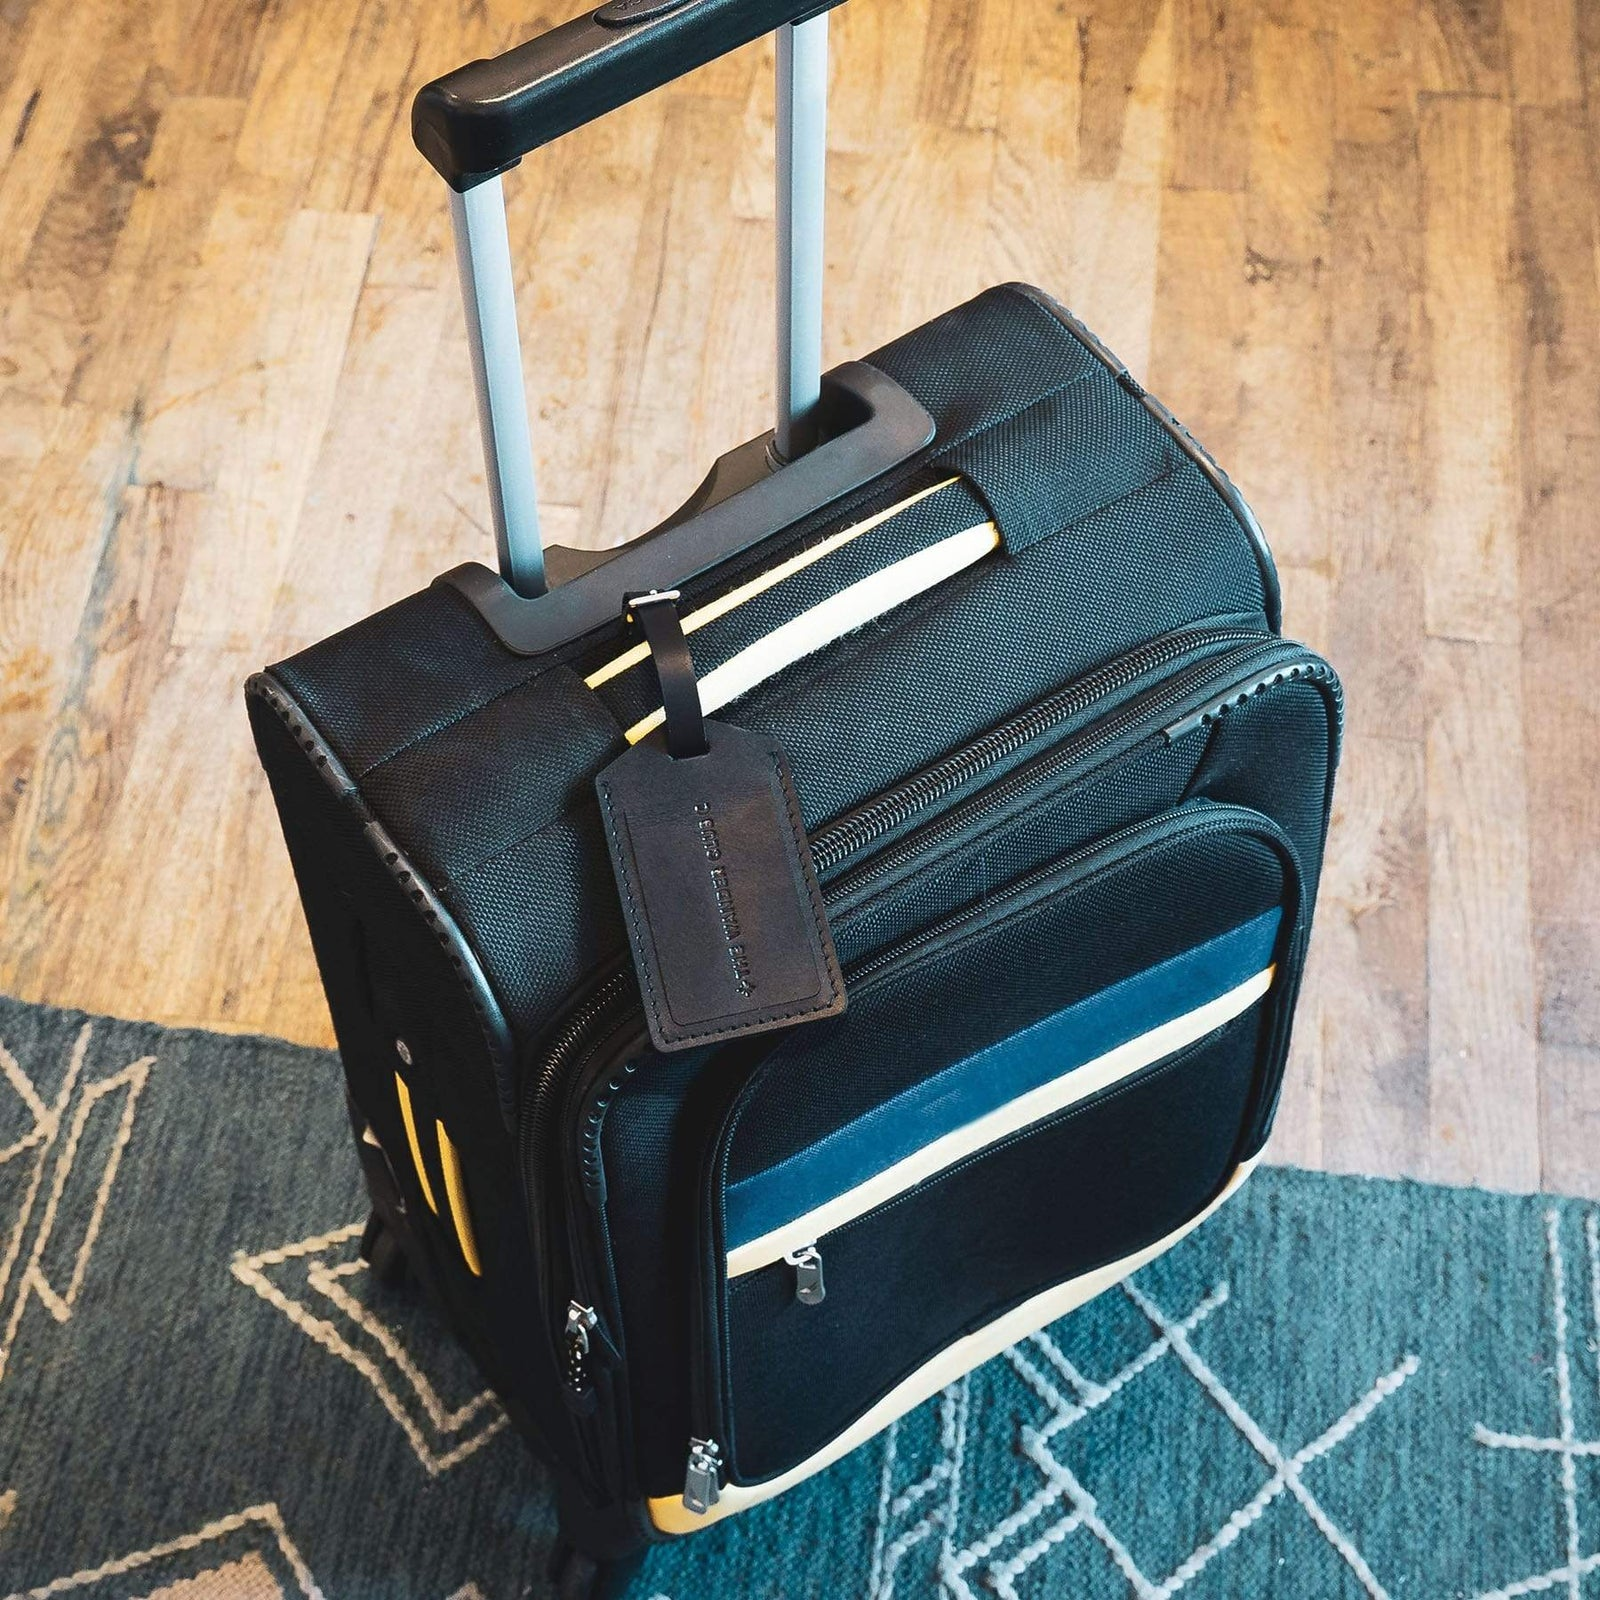 Black luggage tag on suitcase from The Wander Club